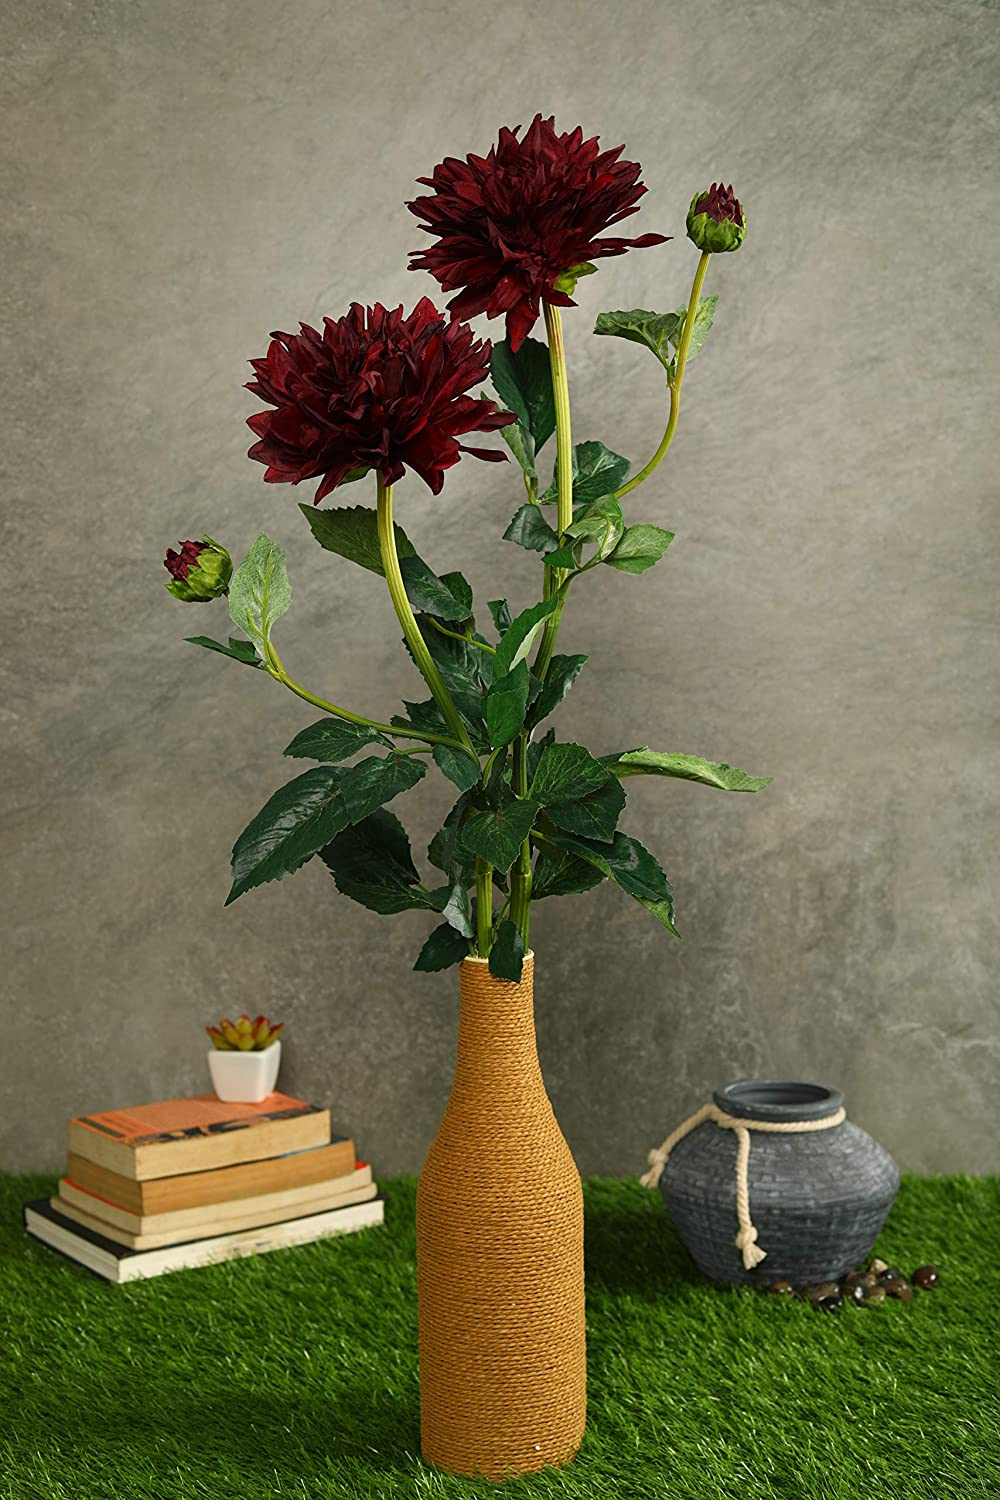 PolliNation Decorative Natural Looking Dahlia Artificial Flower